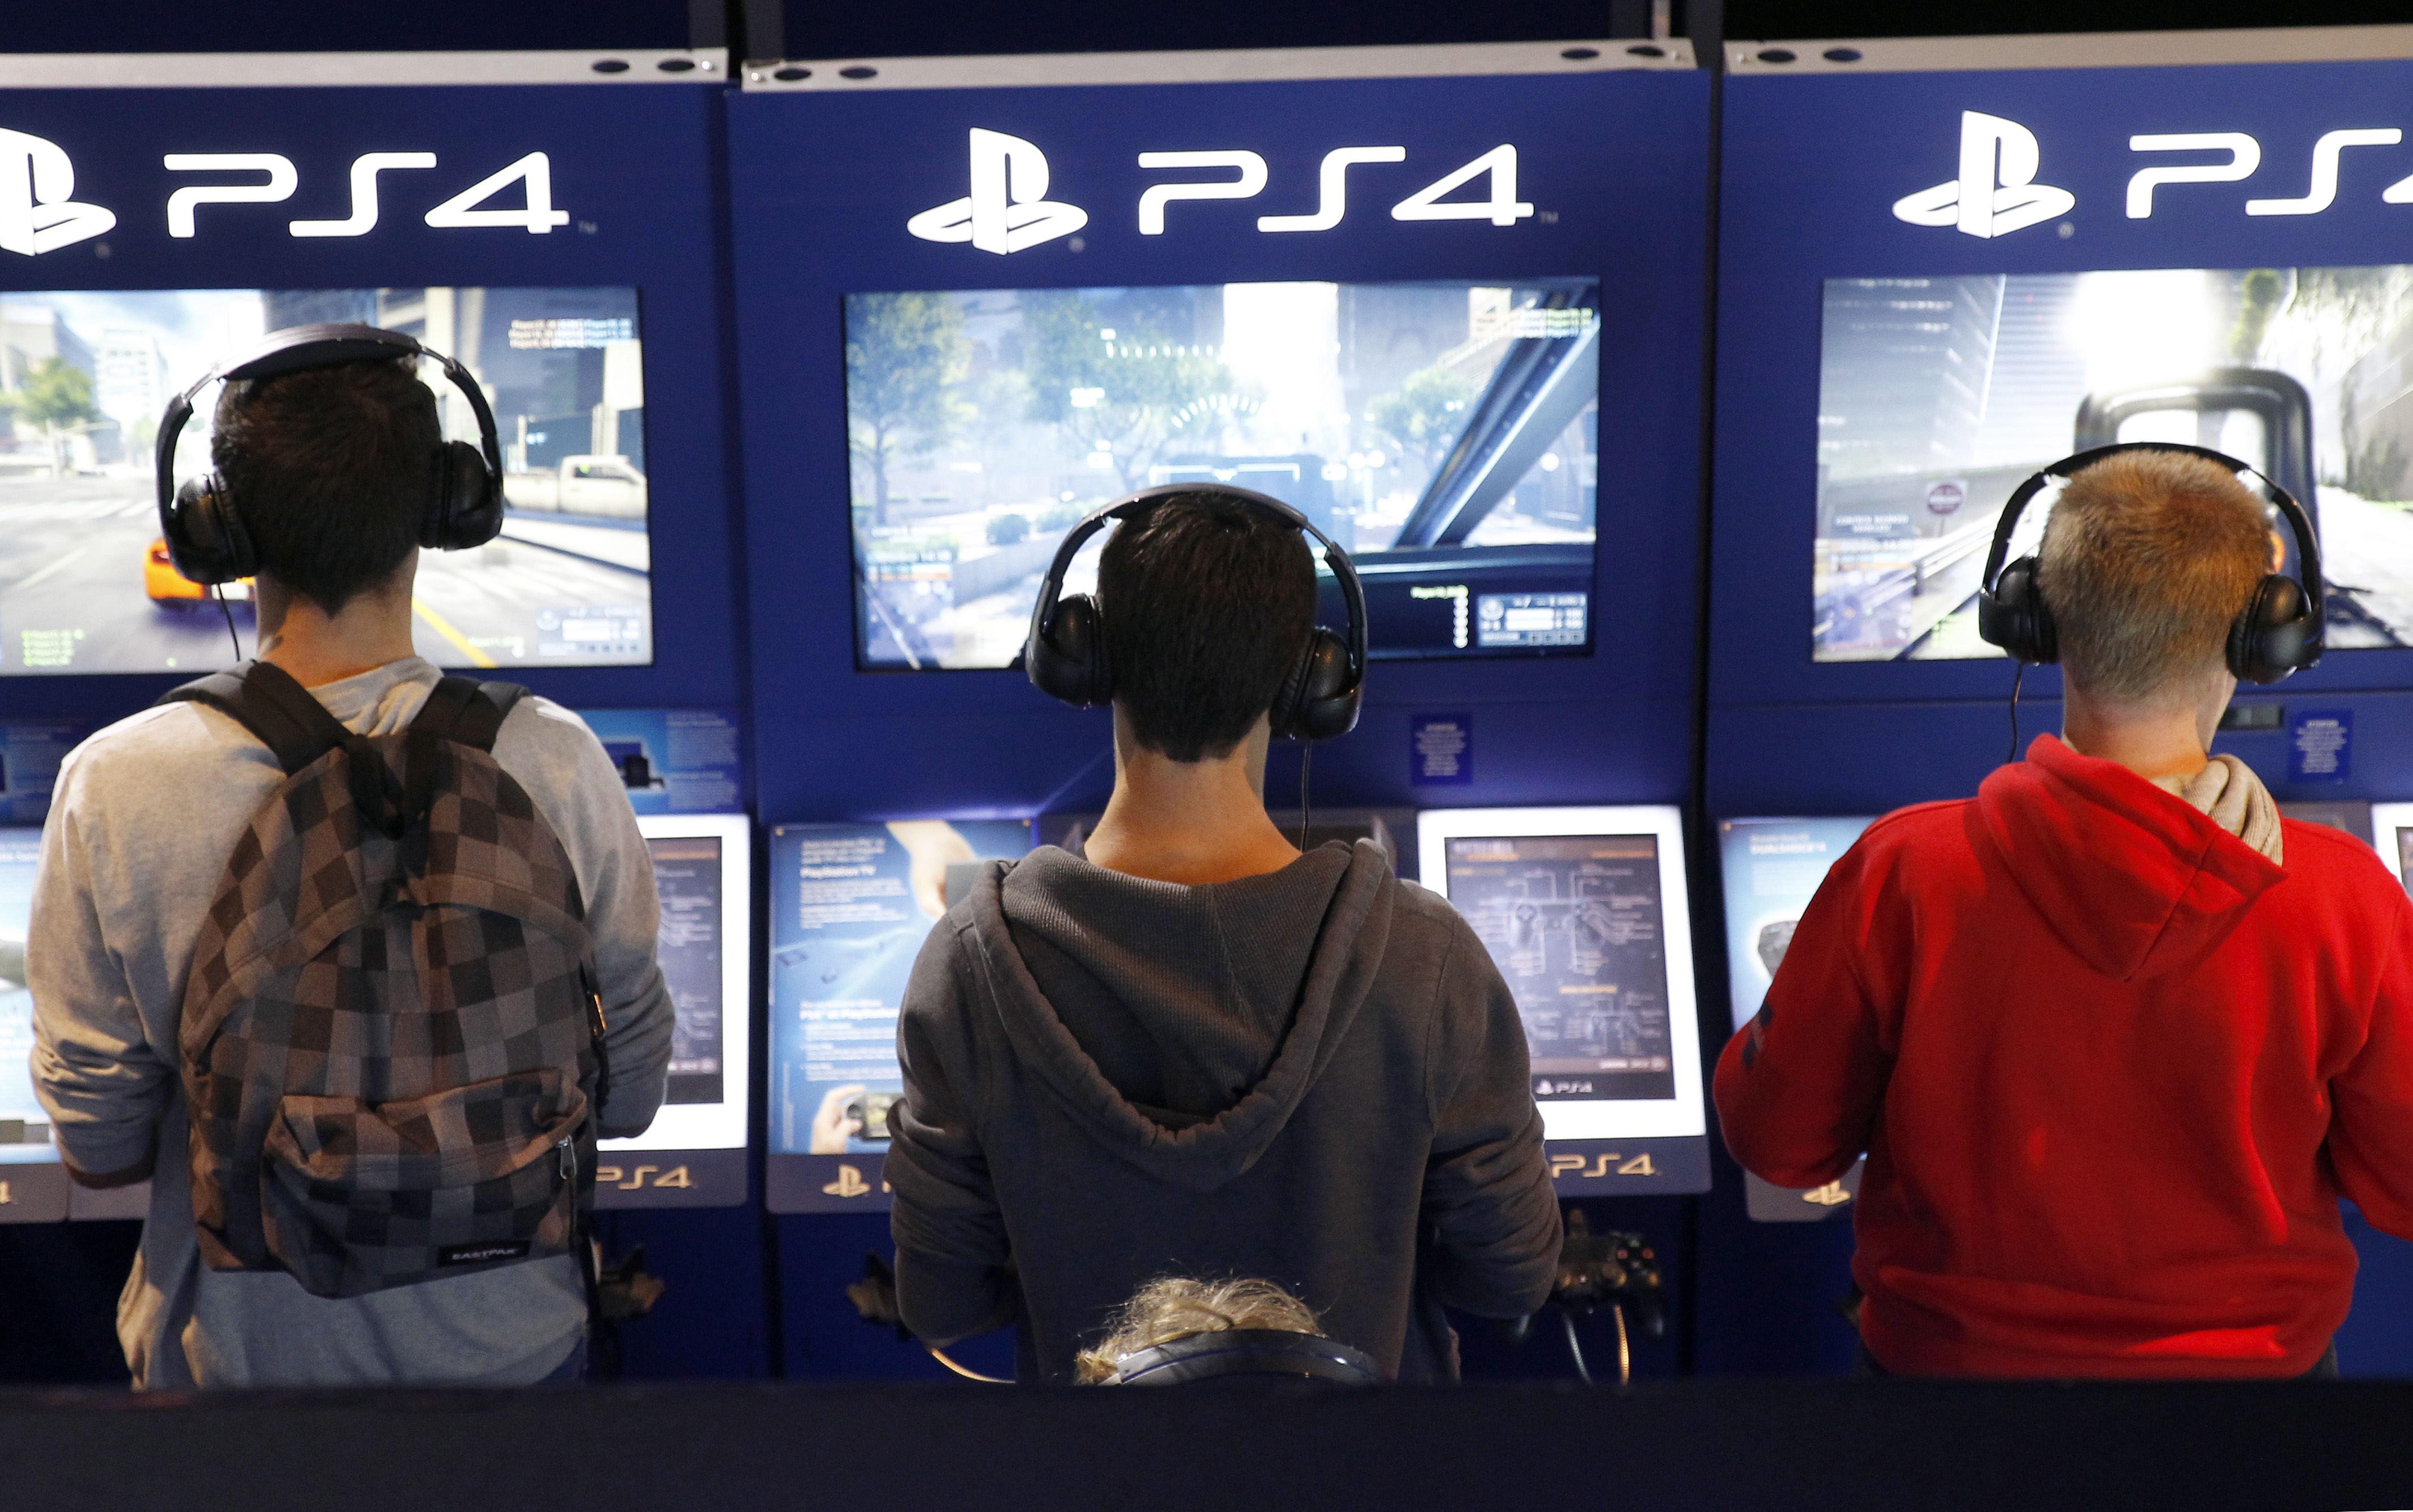 Gamers play video games with the PS4 consoles of Playstation during the International Games Week on October 29, 2014 in Paris, France.